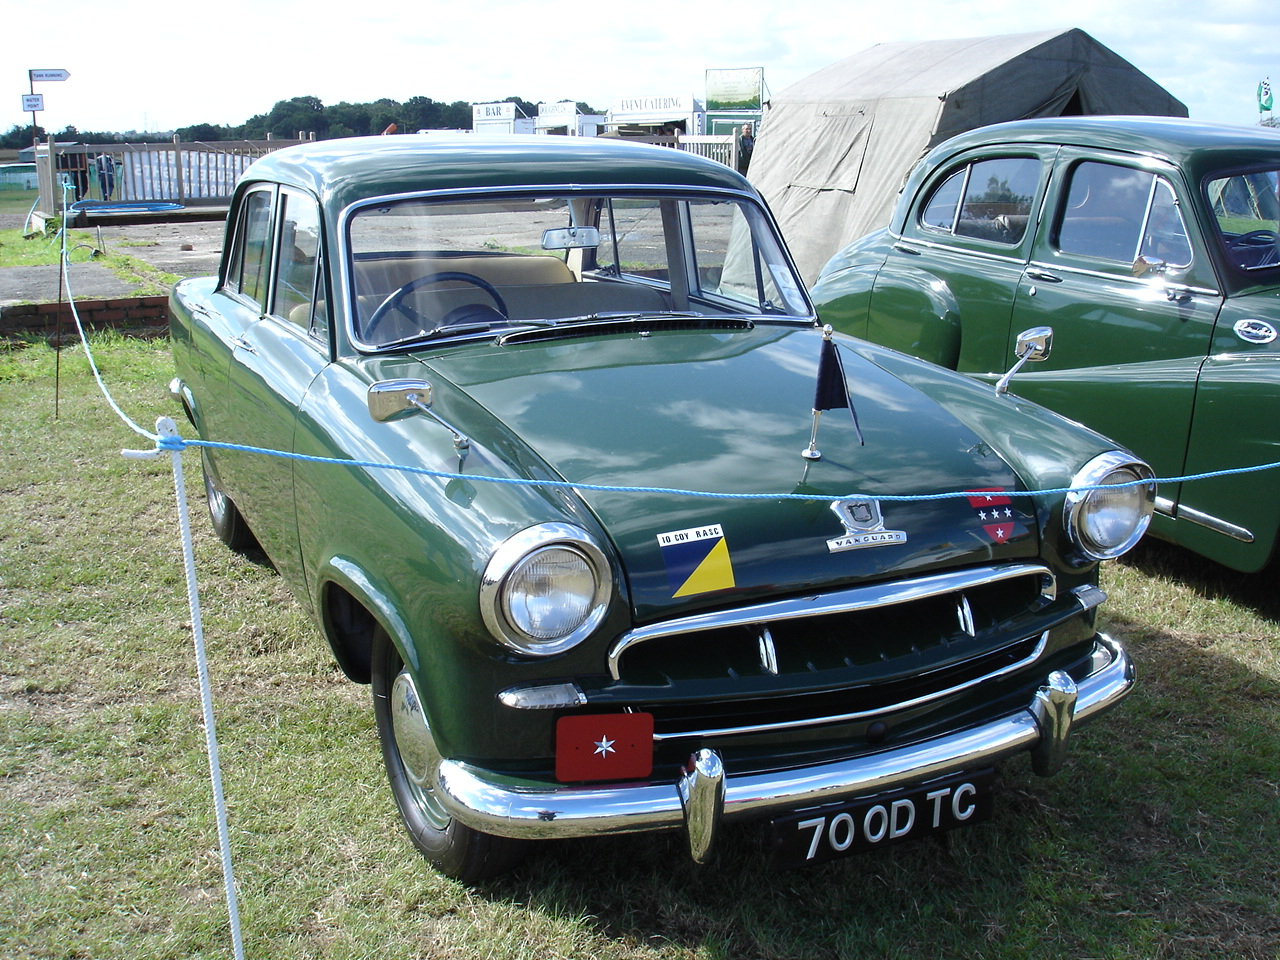 Standard Vanguard Phase Iii: Photo #